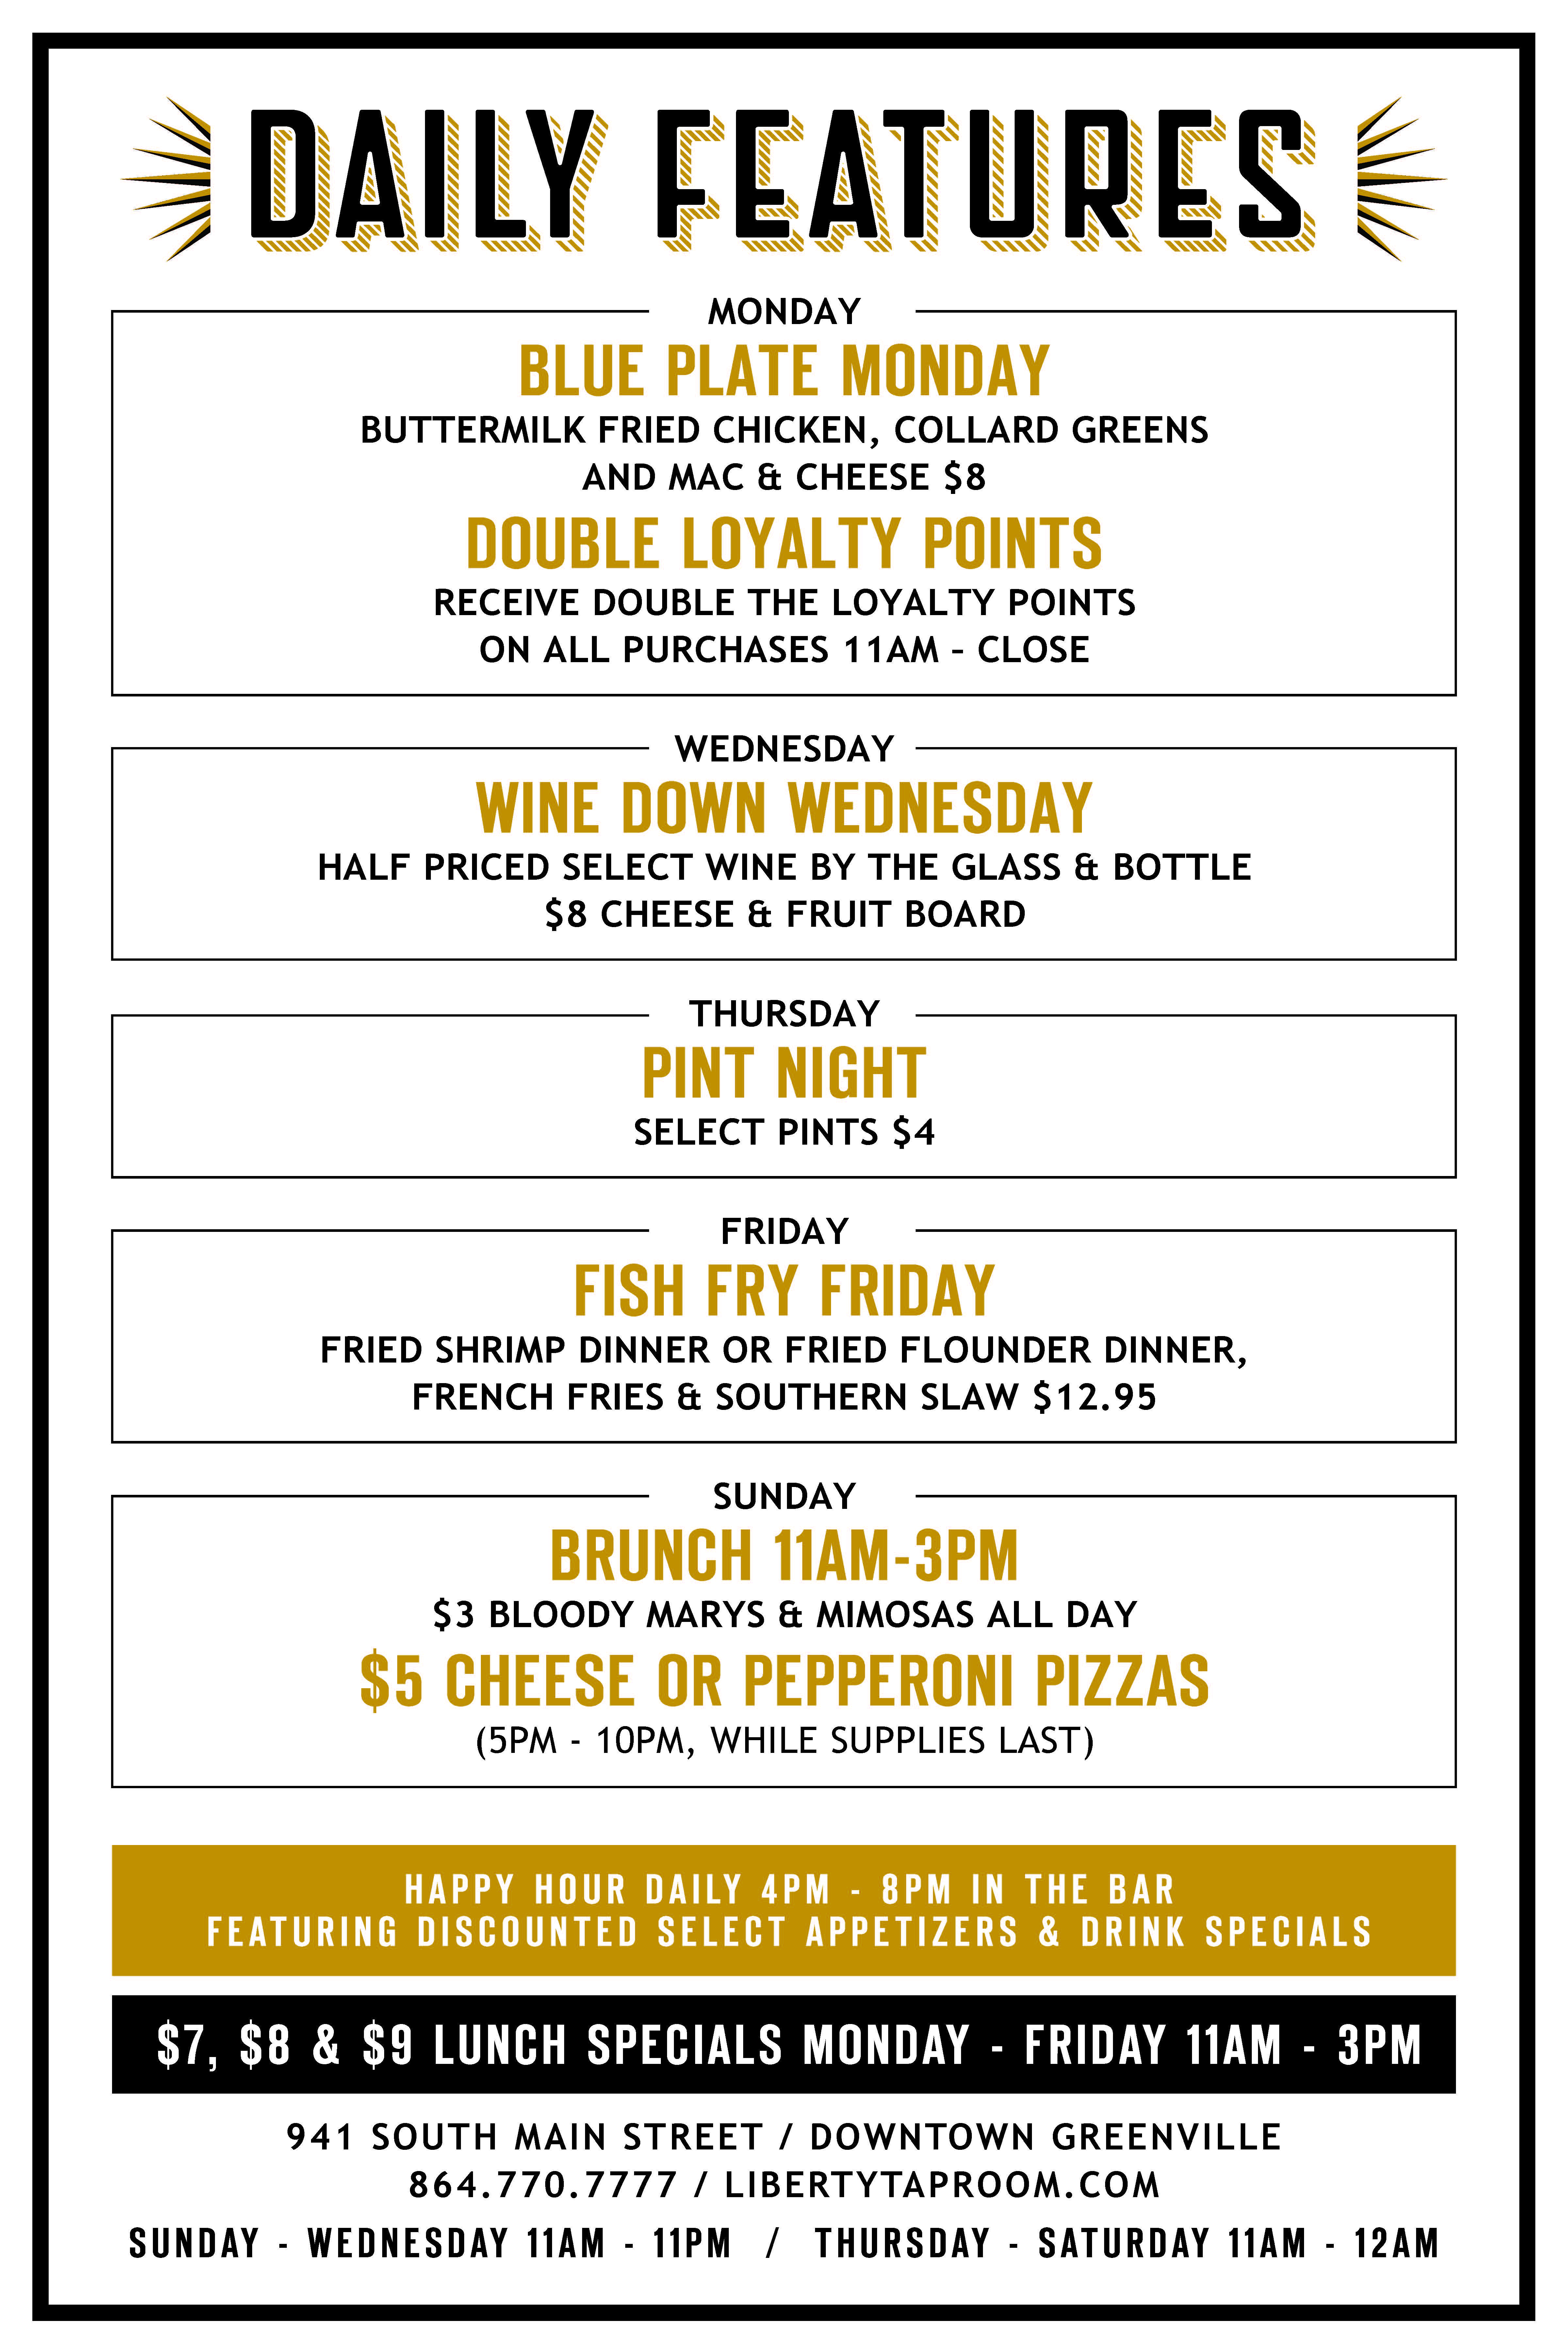 (200) Daily Specials Greenville 24x36 March 2018.jpg